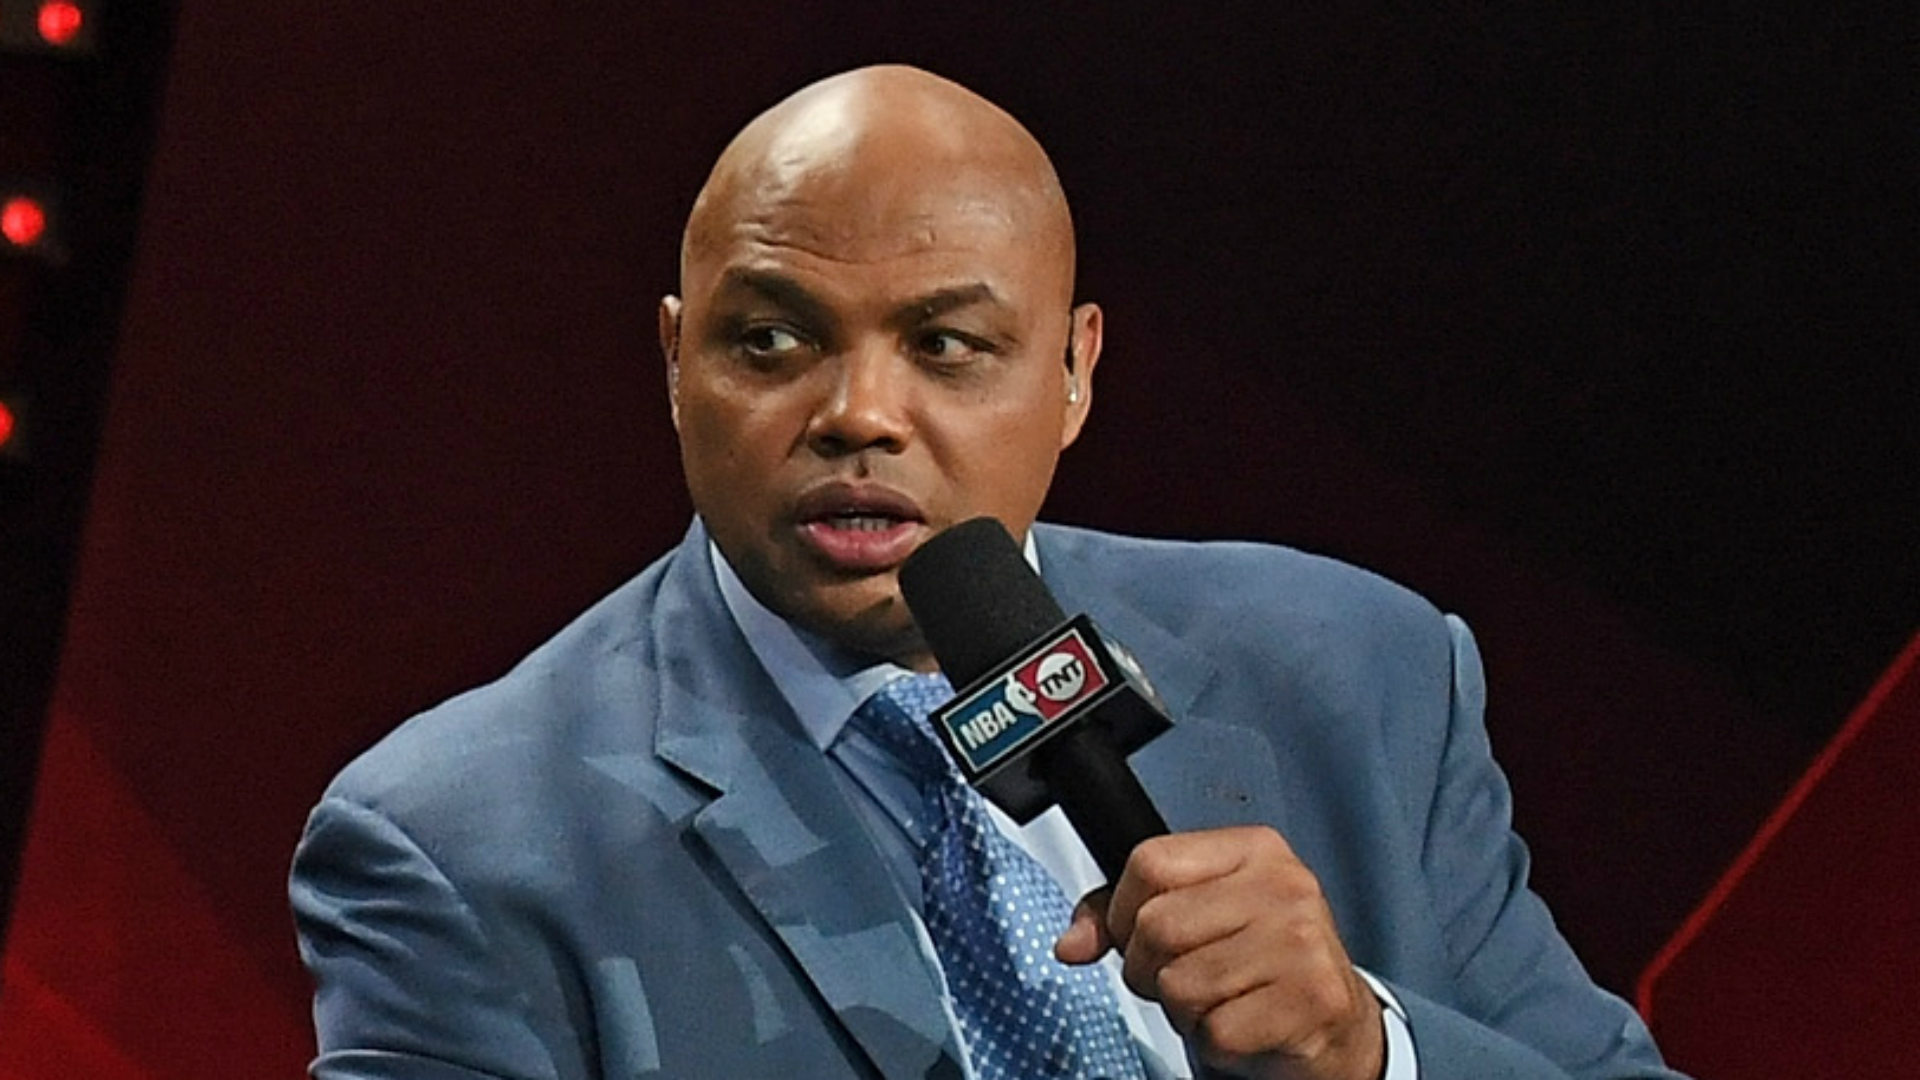 Charles Barkley sounds off again on Kyrie Irving, Kevin Durant